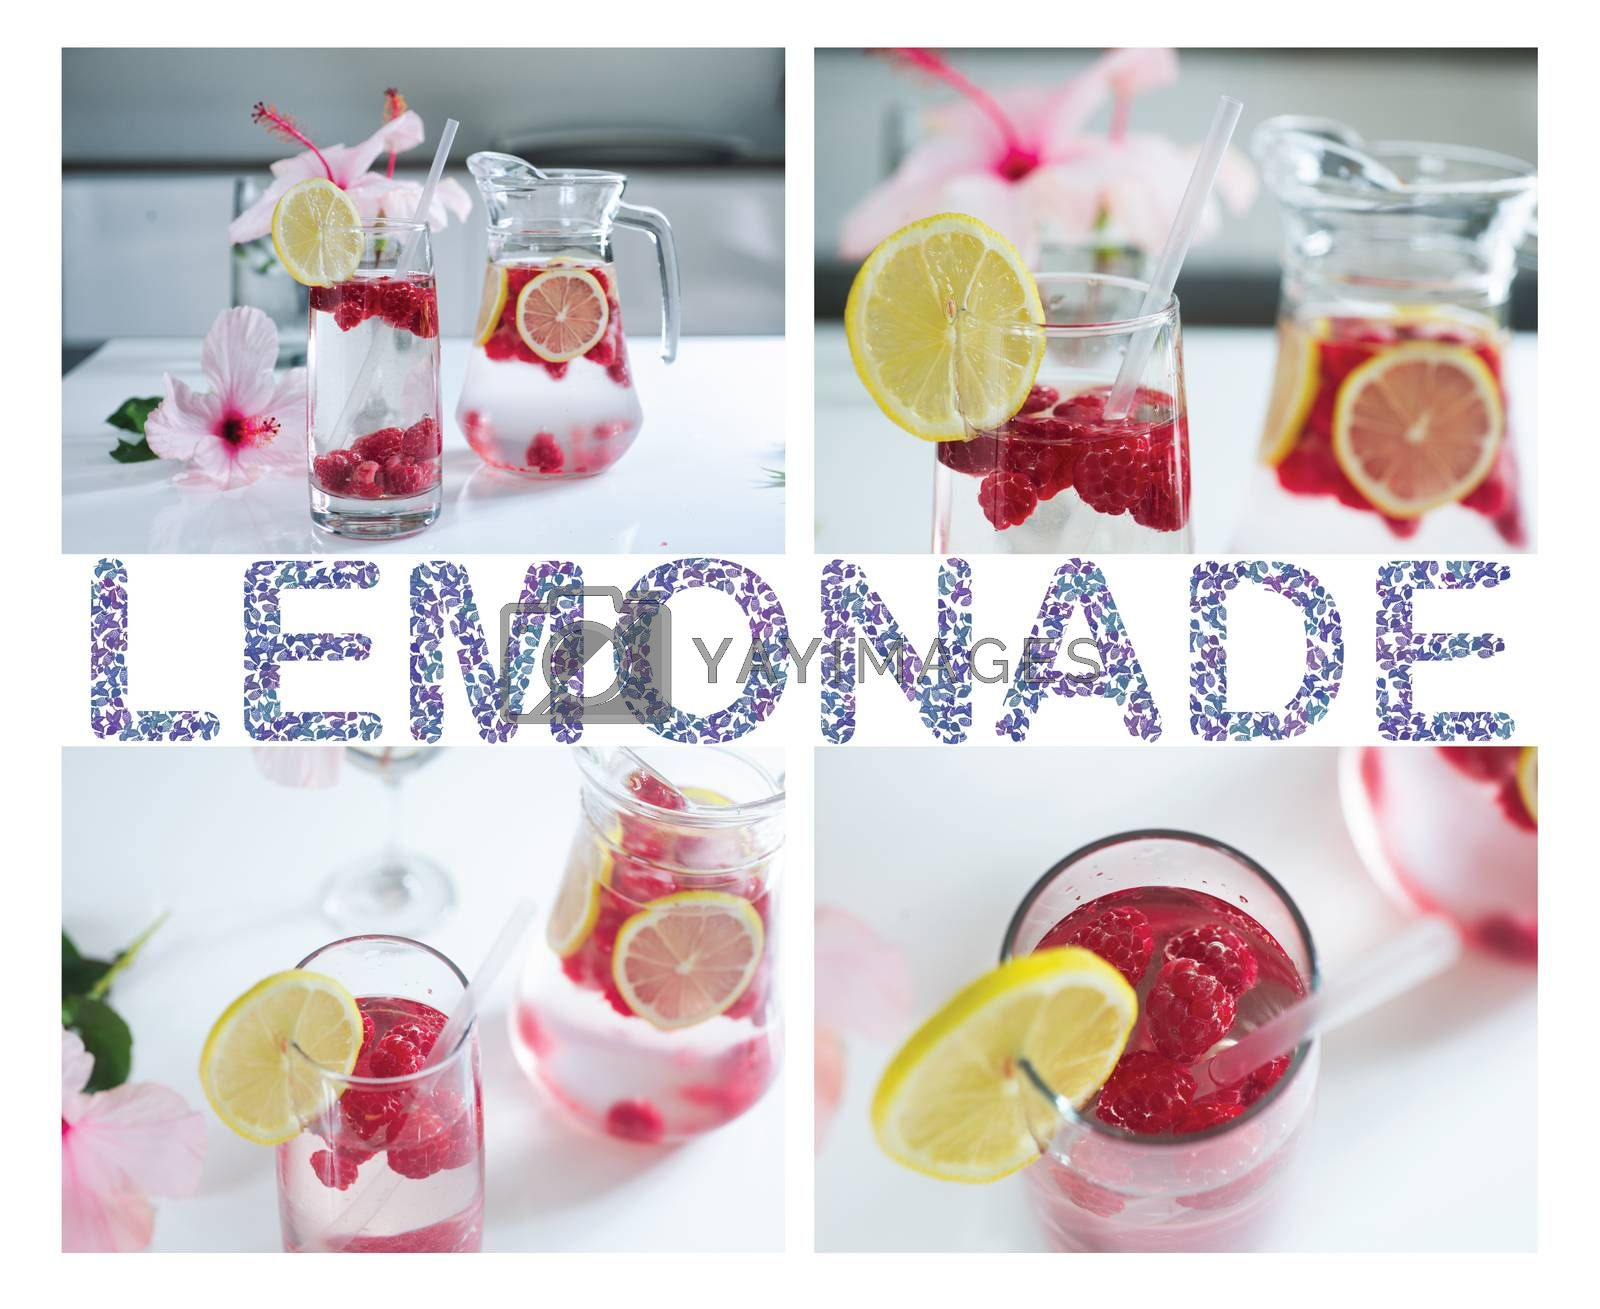 Tasty Lemonade with fresh raspberries and lemon by Margolana